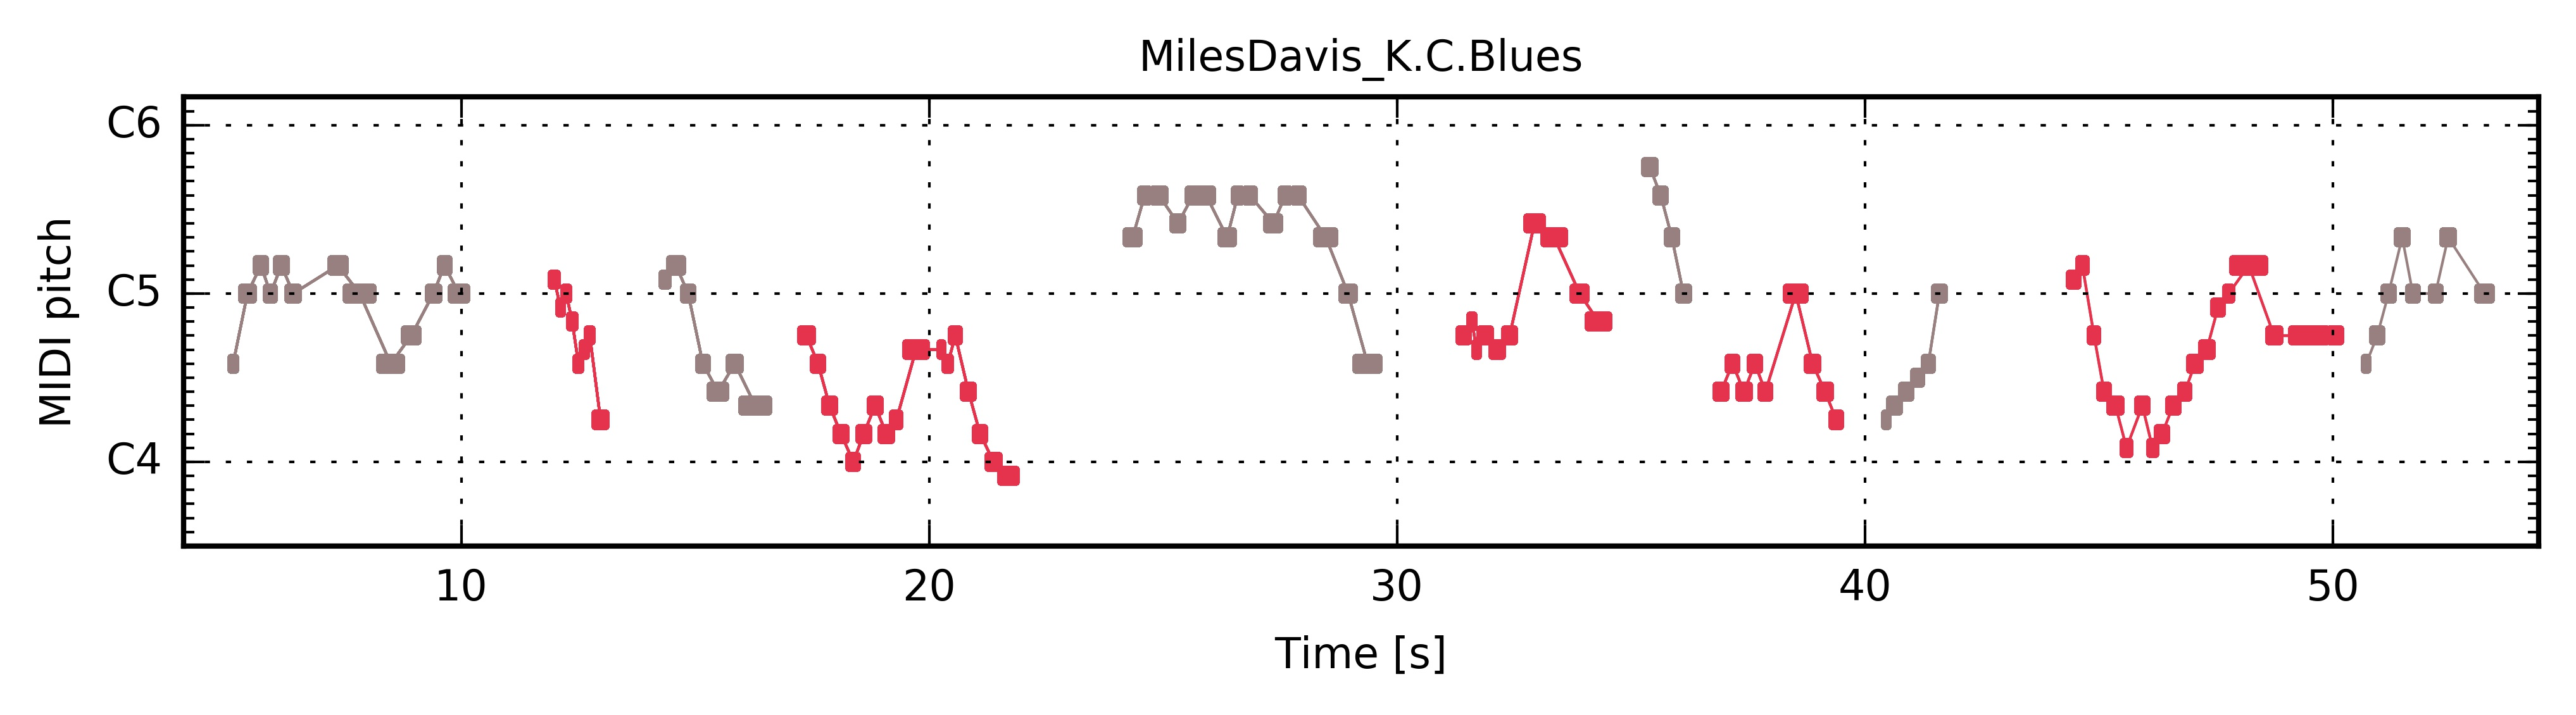 "Miles Davis ""K C  Blues"" — The Jazzomat Research Project"